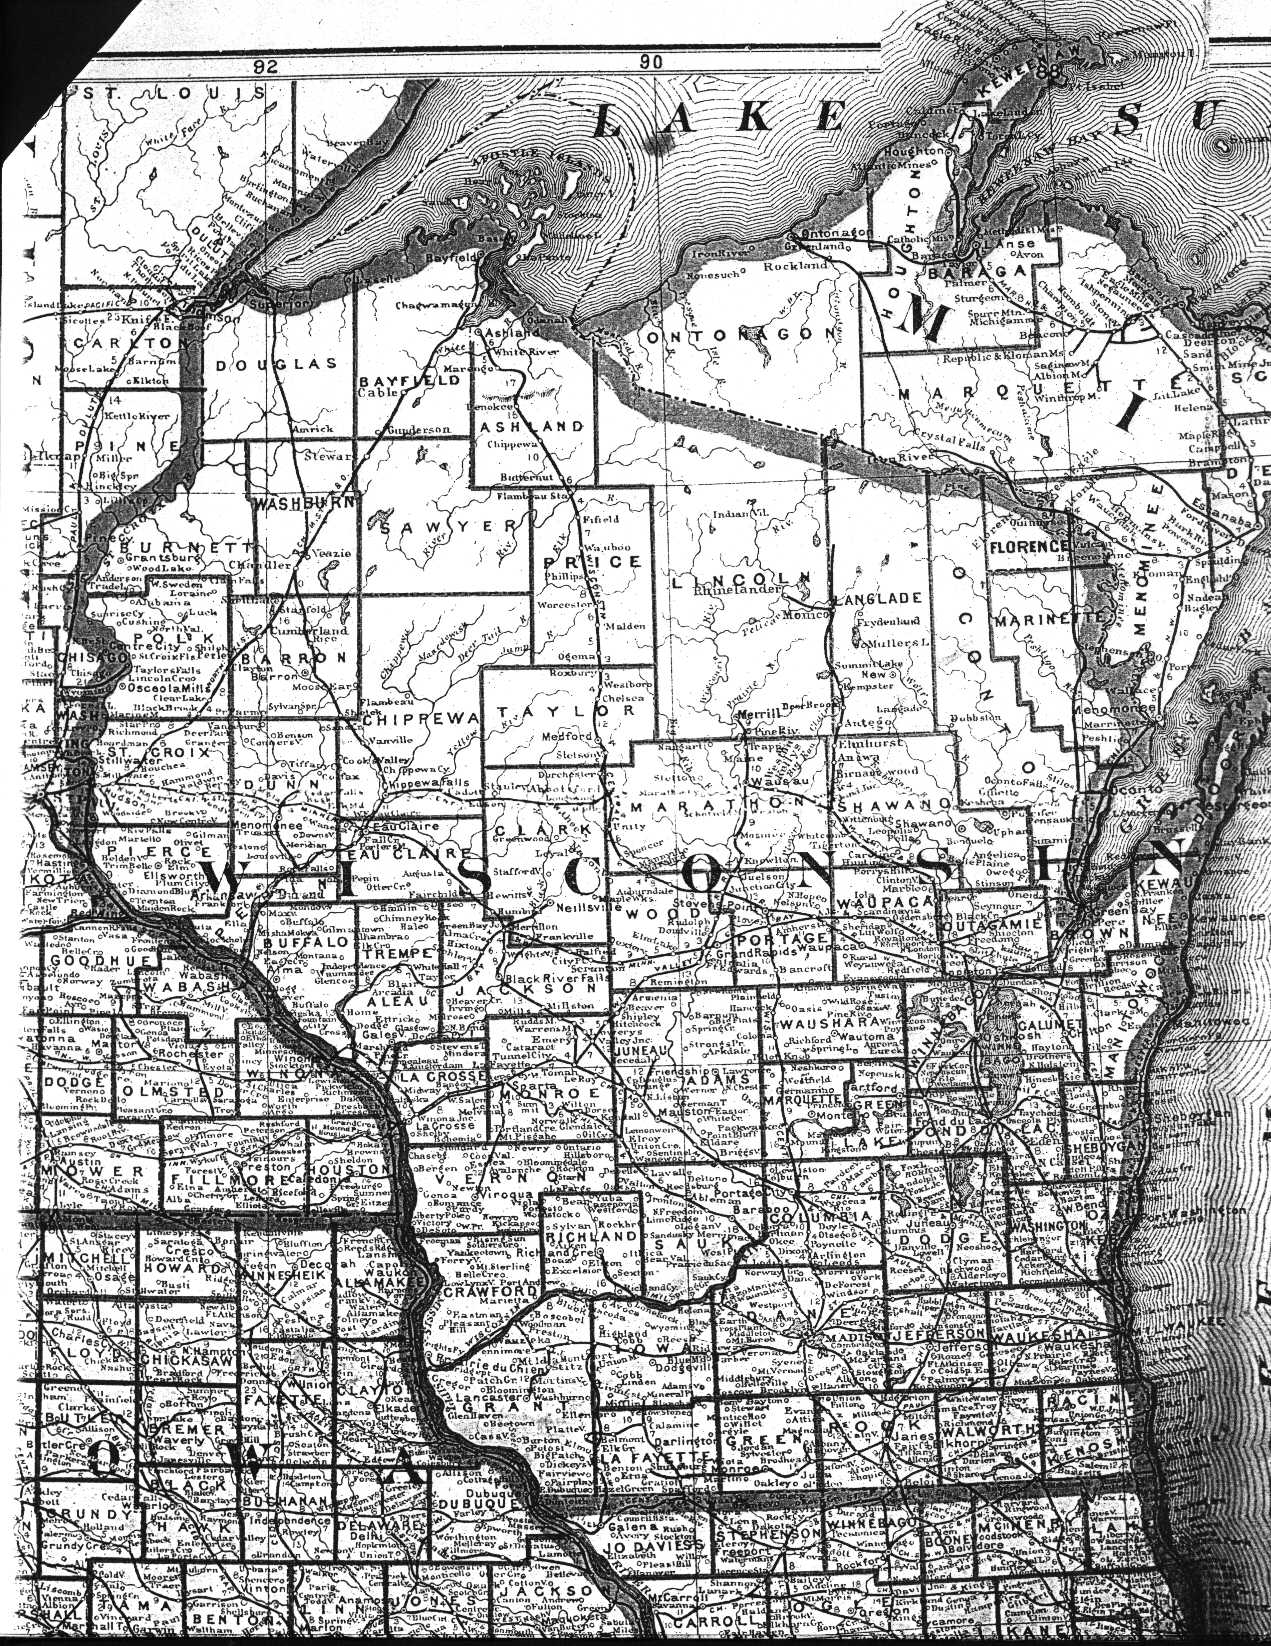 Historical Maps - History - Polk County, Wisconsin on map of uranus, map of cold mountain, map of jfk, map of luna, map of the great war, map of brazil, map of greed, map of italy, map of police, map of iran, map of new york, new york, map of barbara, map of 49th parallel, map of life is beautiful, map of wolf, map of gettysburg, map of apocalypse now, map of network, map of zulu,